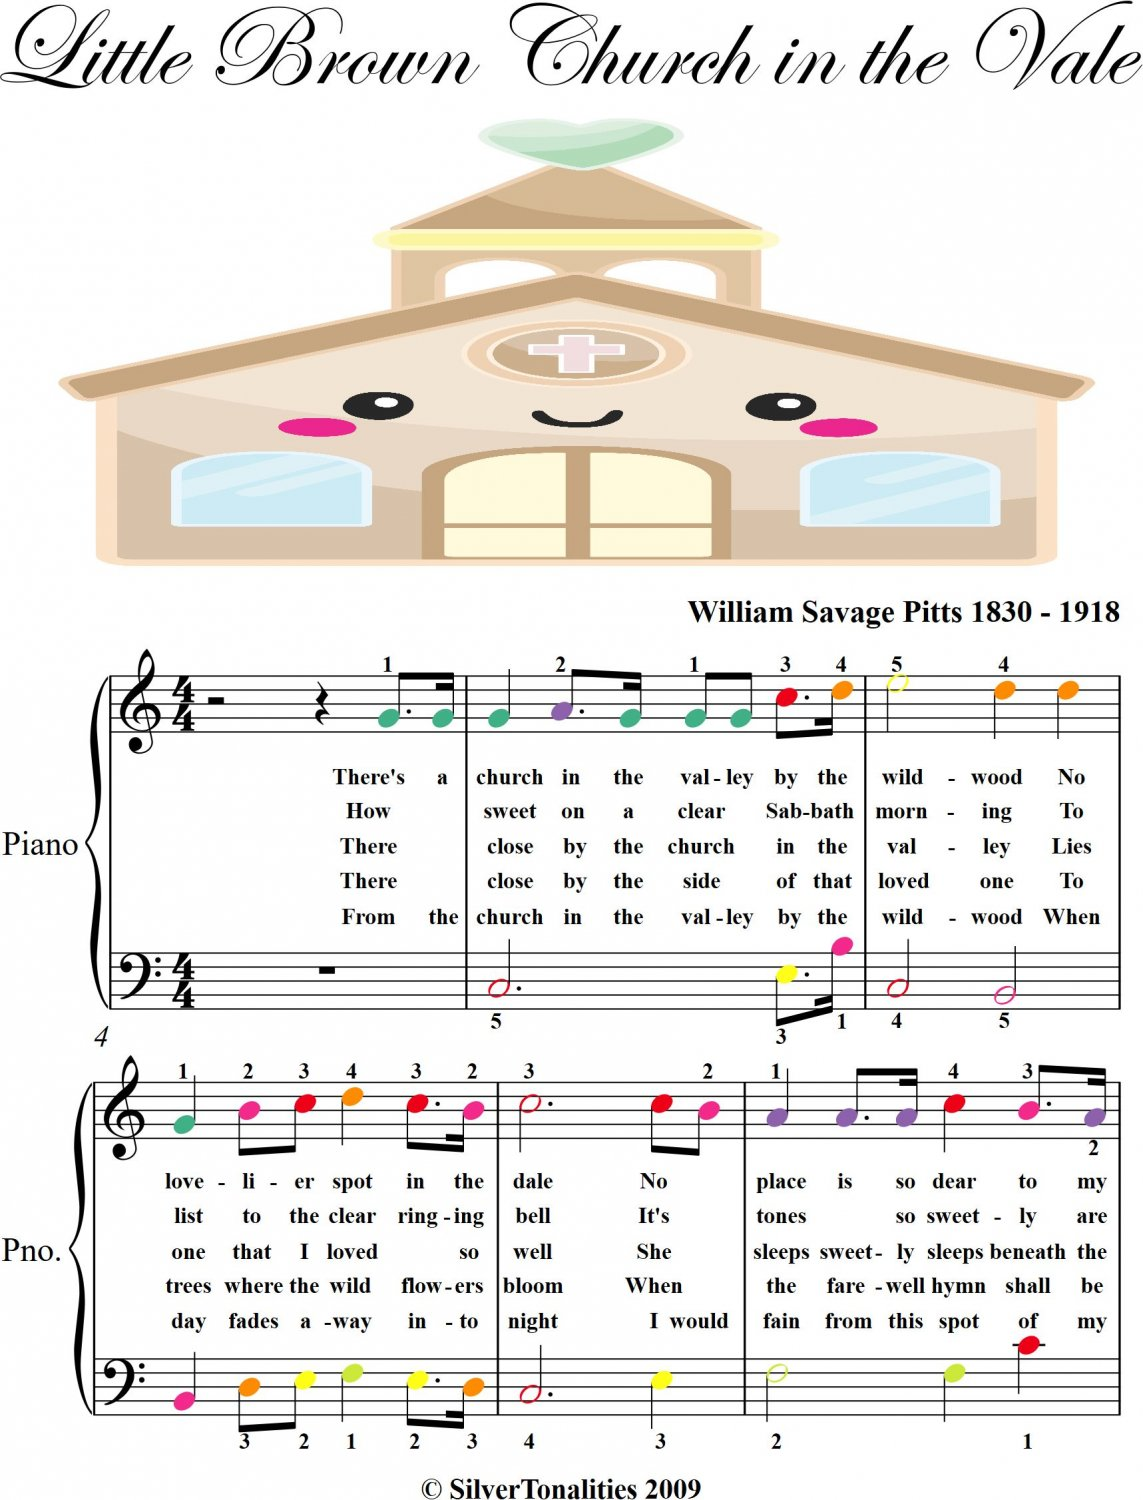 Little Brown Church in the Vale Easy Piano Sheet Music with Colored Notes